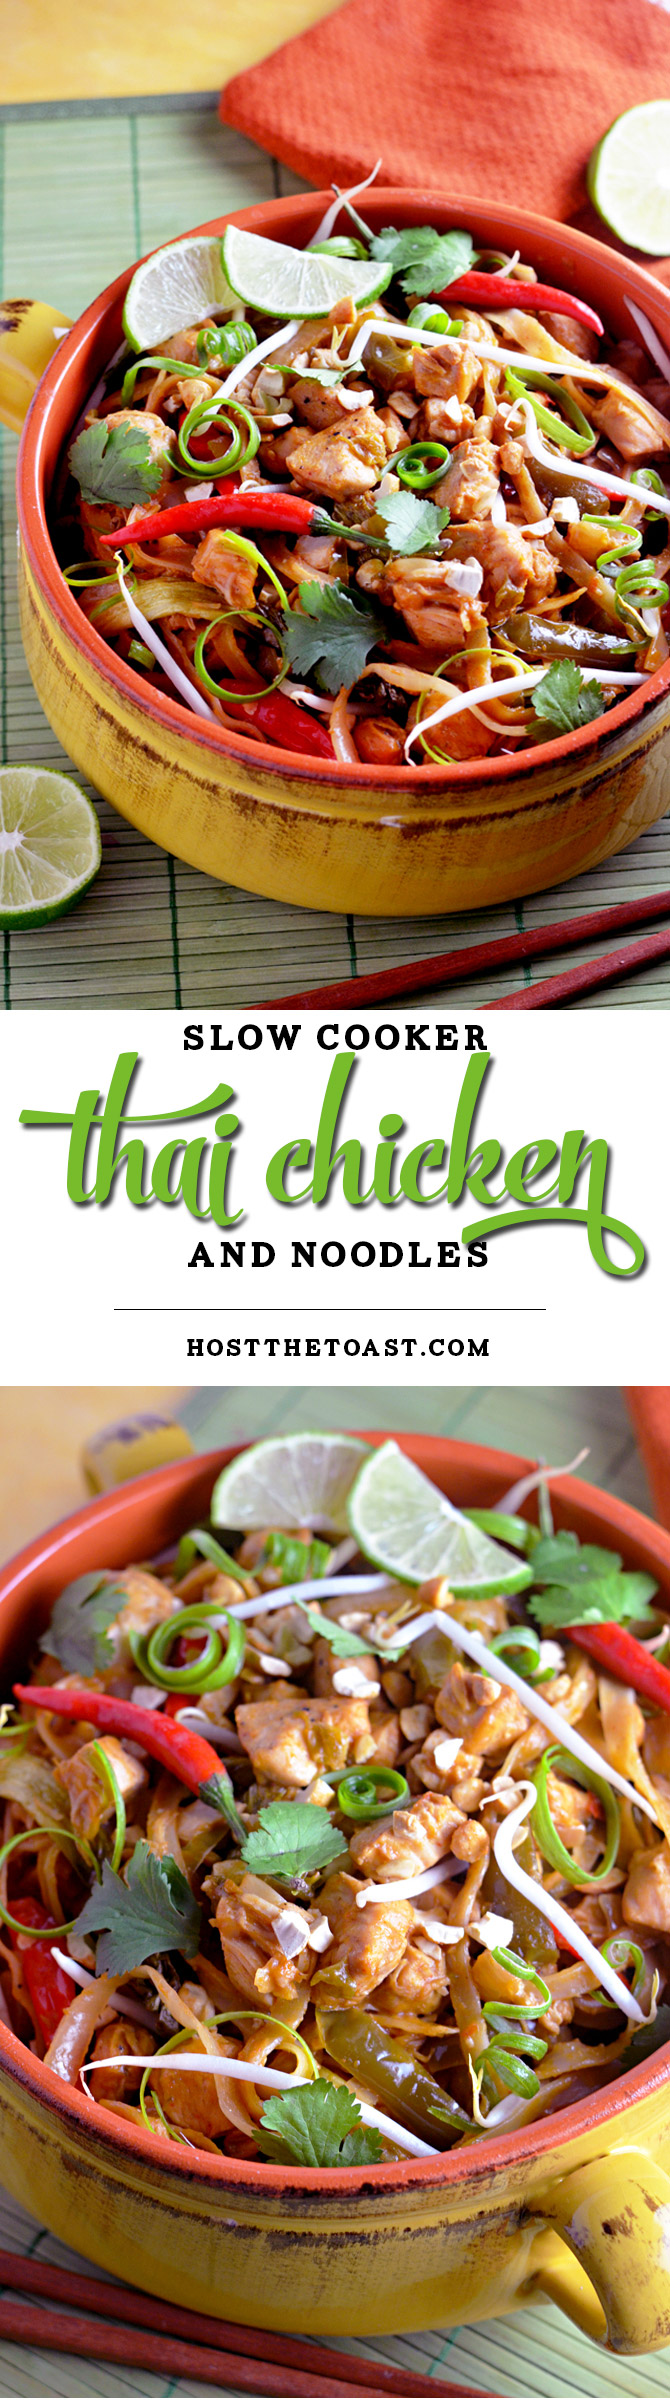 Slow Cooker Thai Chicken and Noodles. The chicken and noodles cook right in the sauce in this flavorful crock pot dish! | hostthetoast.com